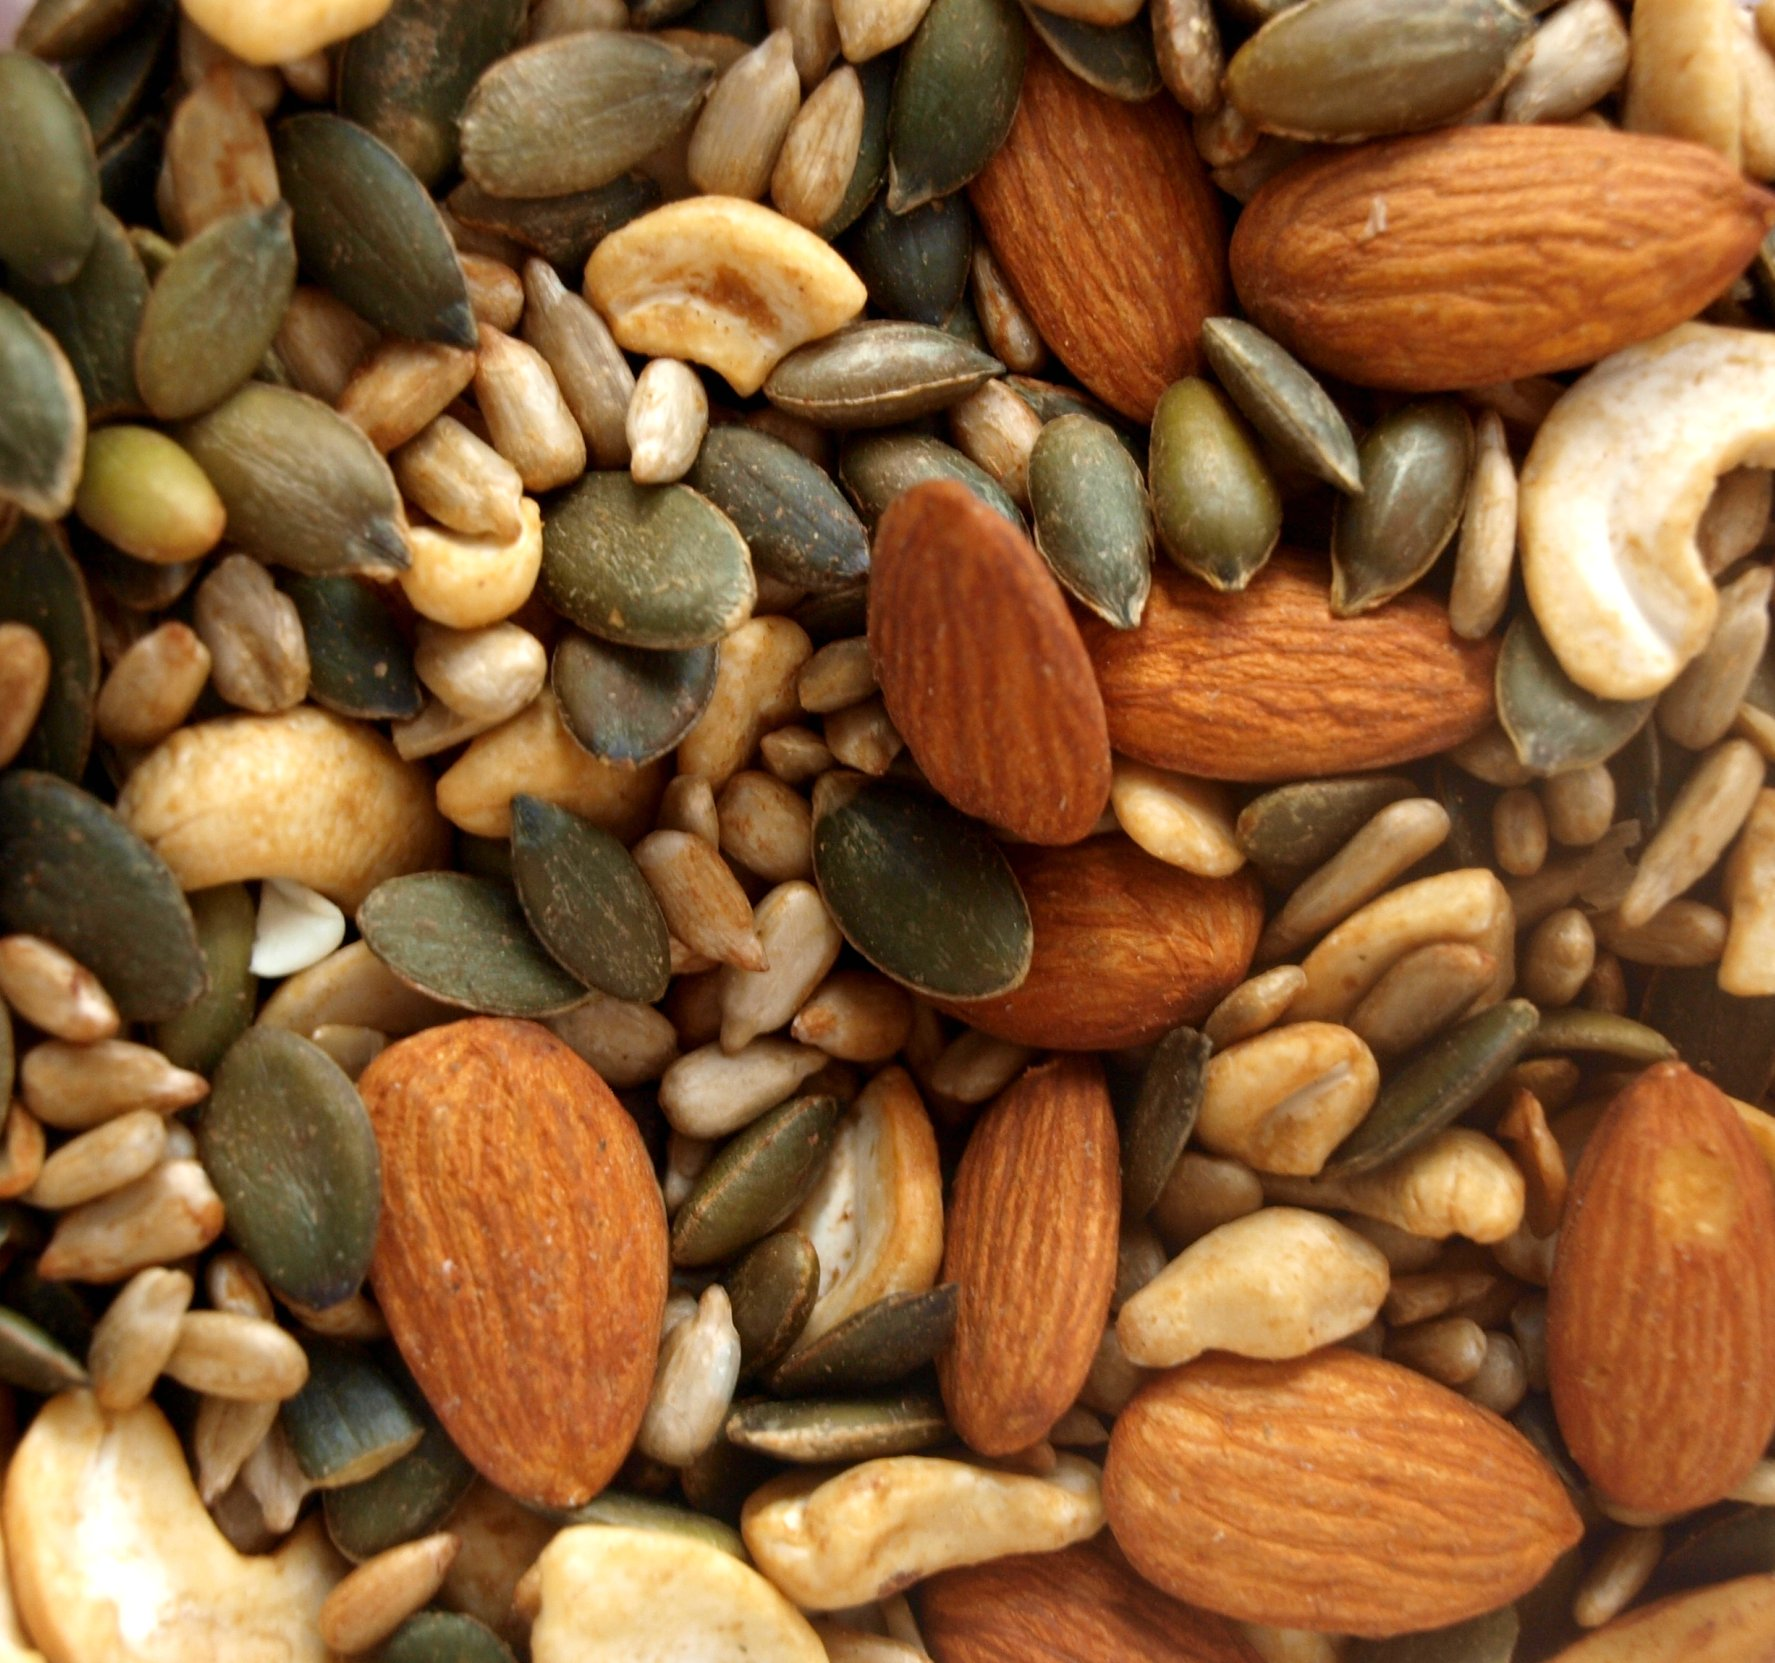 Servings of Nuts and Seeds on the South Beach Diet